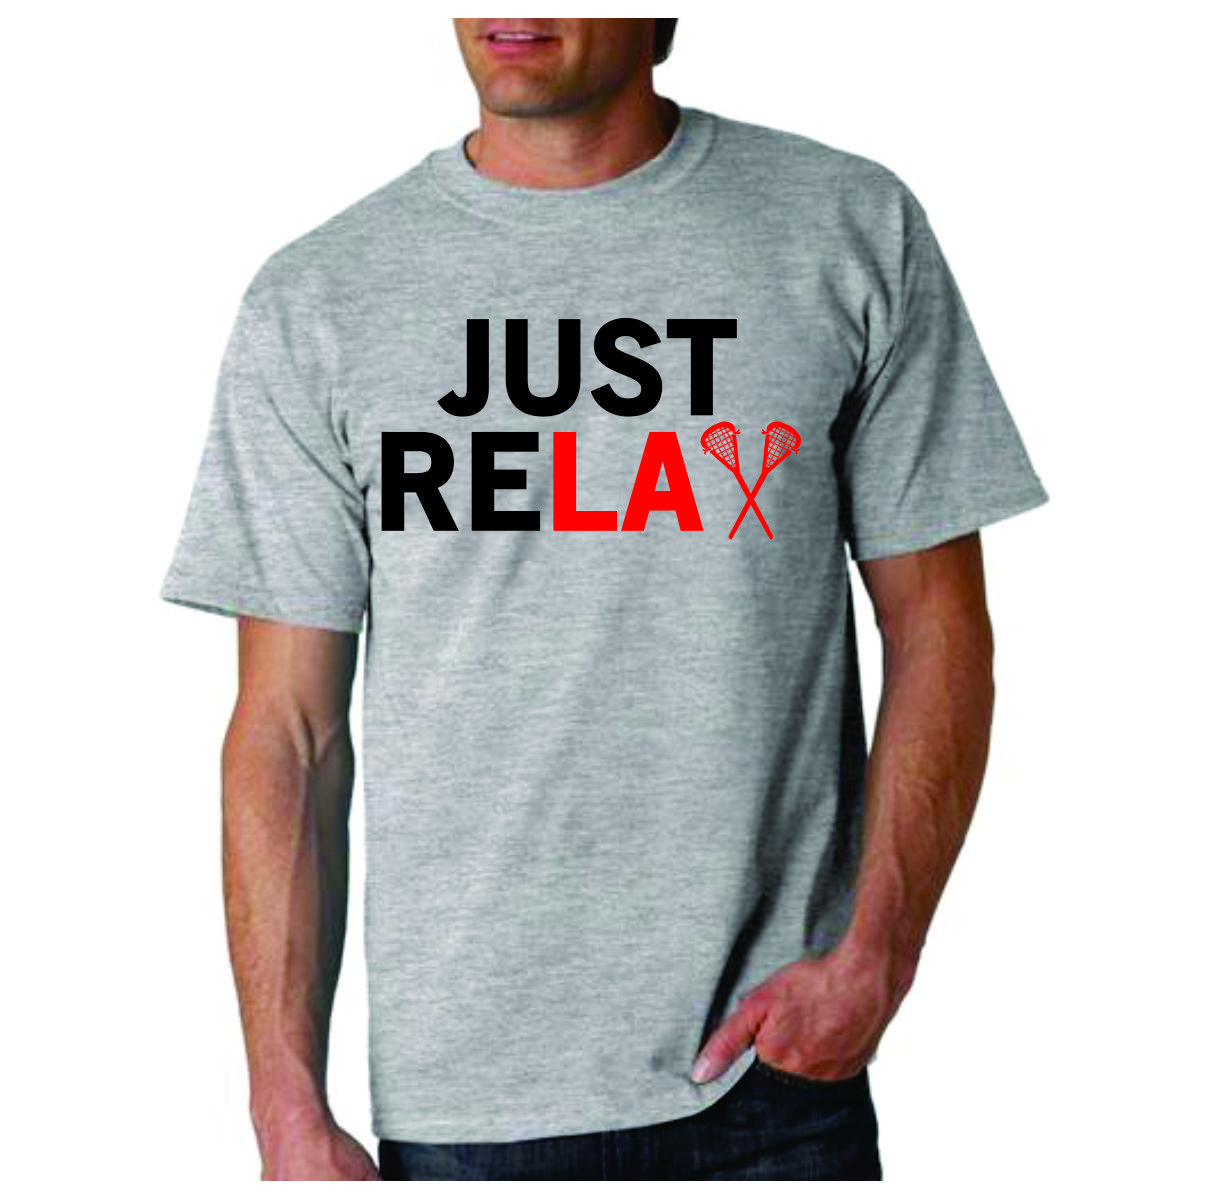 Lacrosse T Shirt Just Relax